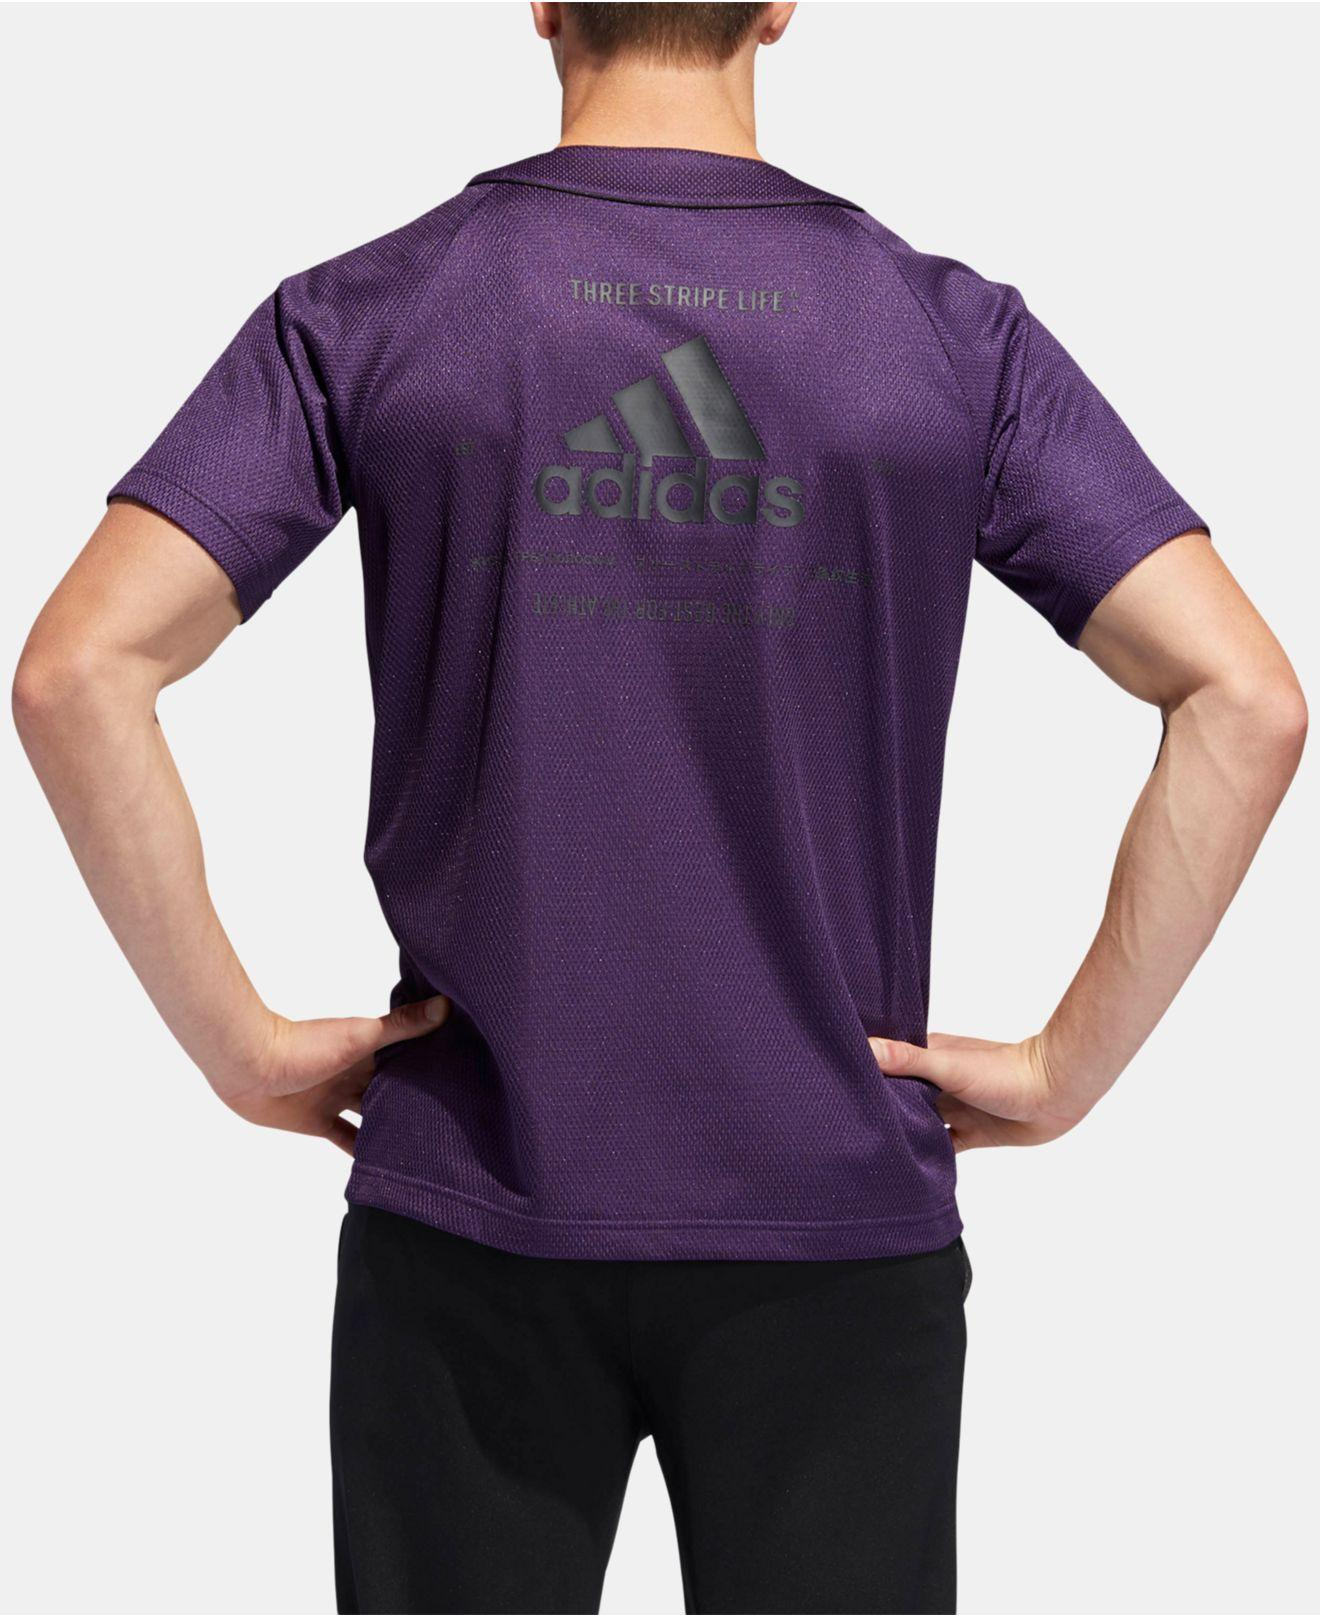 adidas Synthetic Baseball Jersey in Purple for Men - Lyst